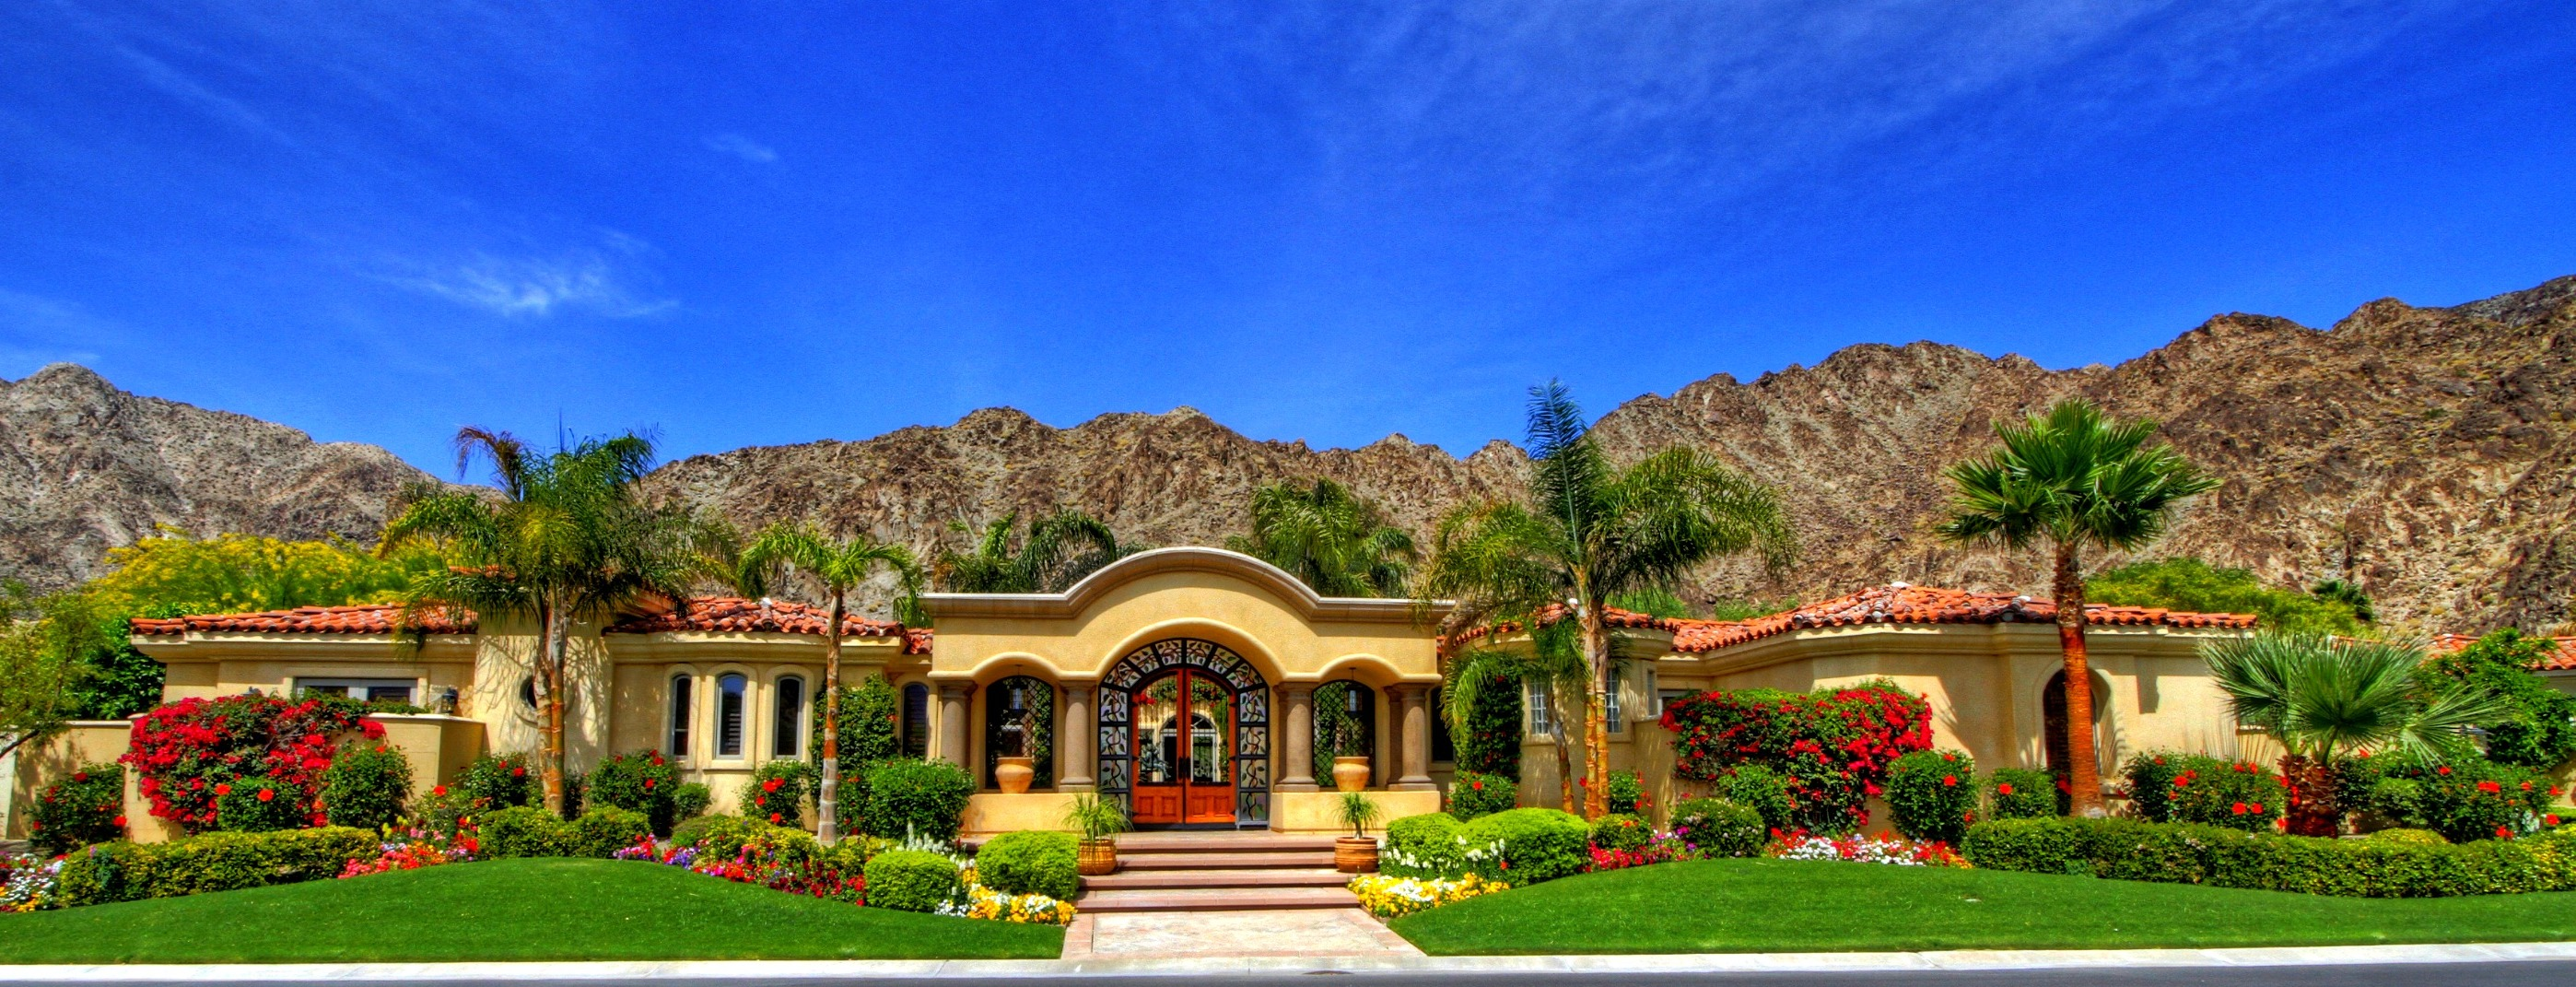 La quinta ca luxury real estate big winner at humana s pga Home estate